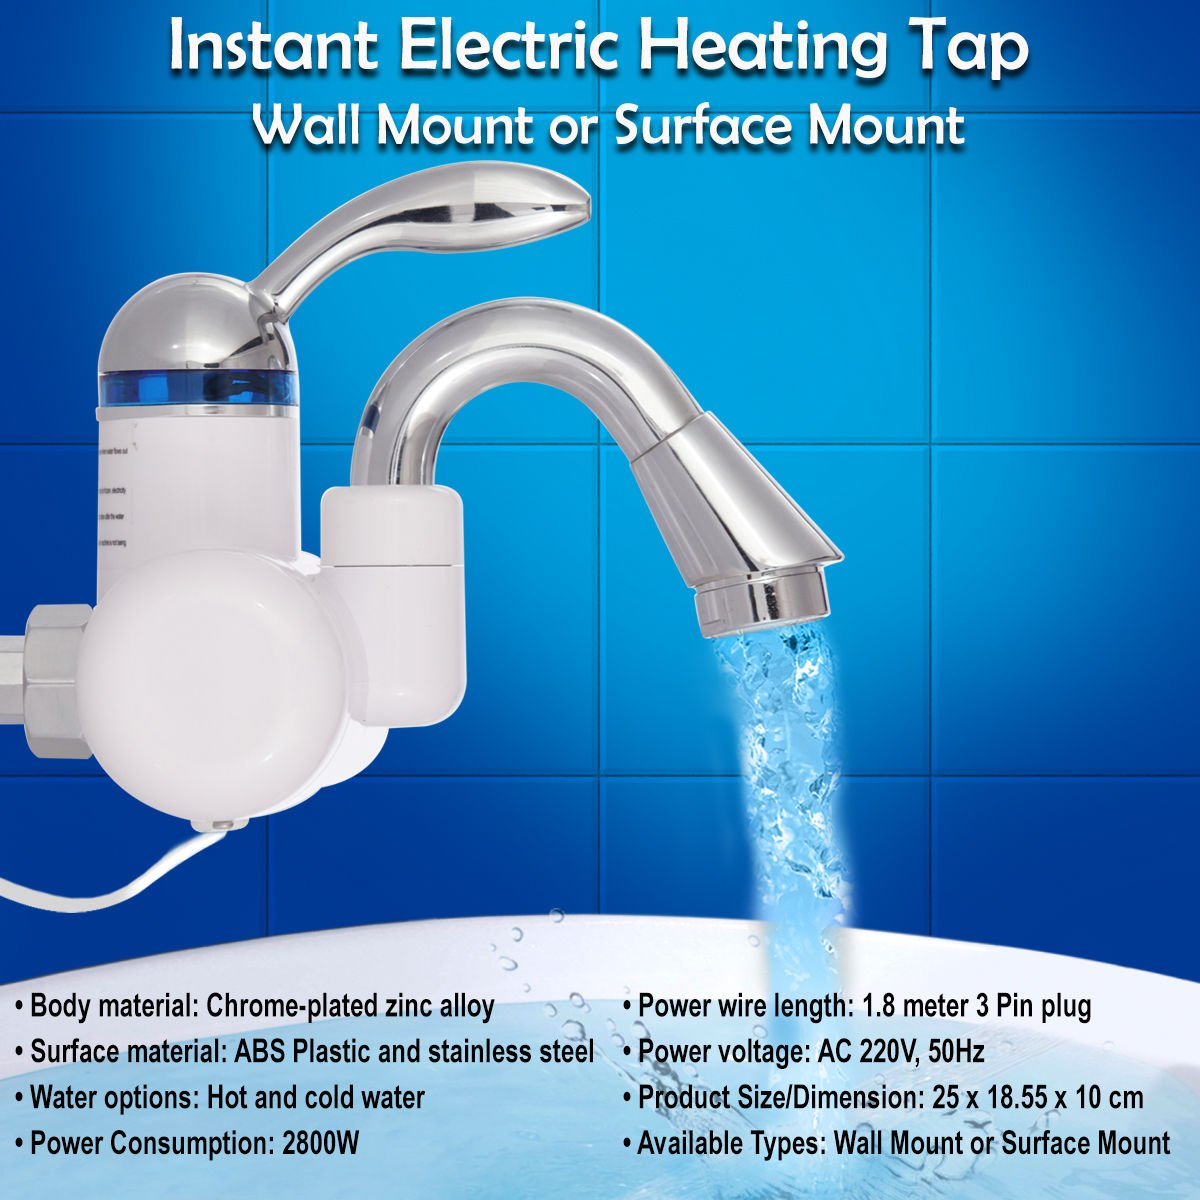 Buy Tna Instant Electric Heating Tap Wall Mount Online at Low Prices ...